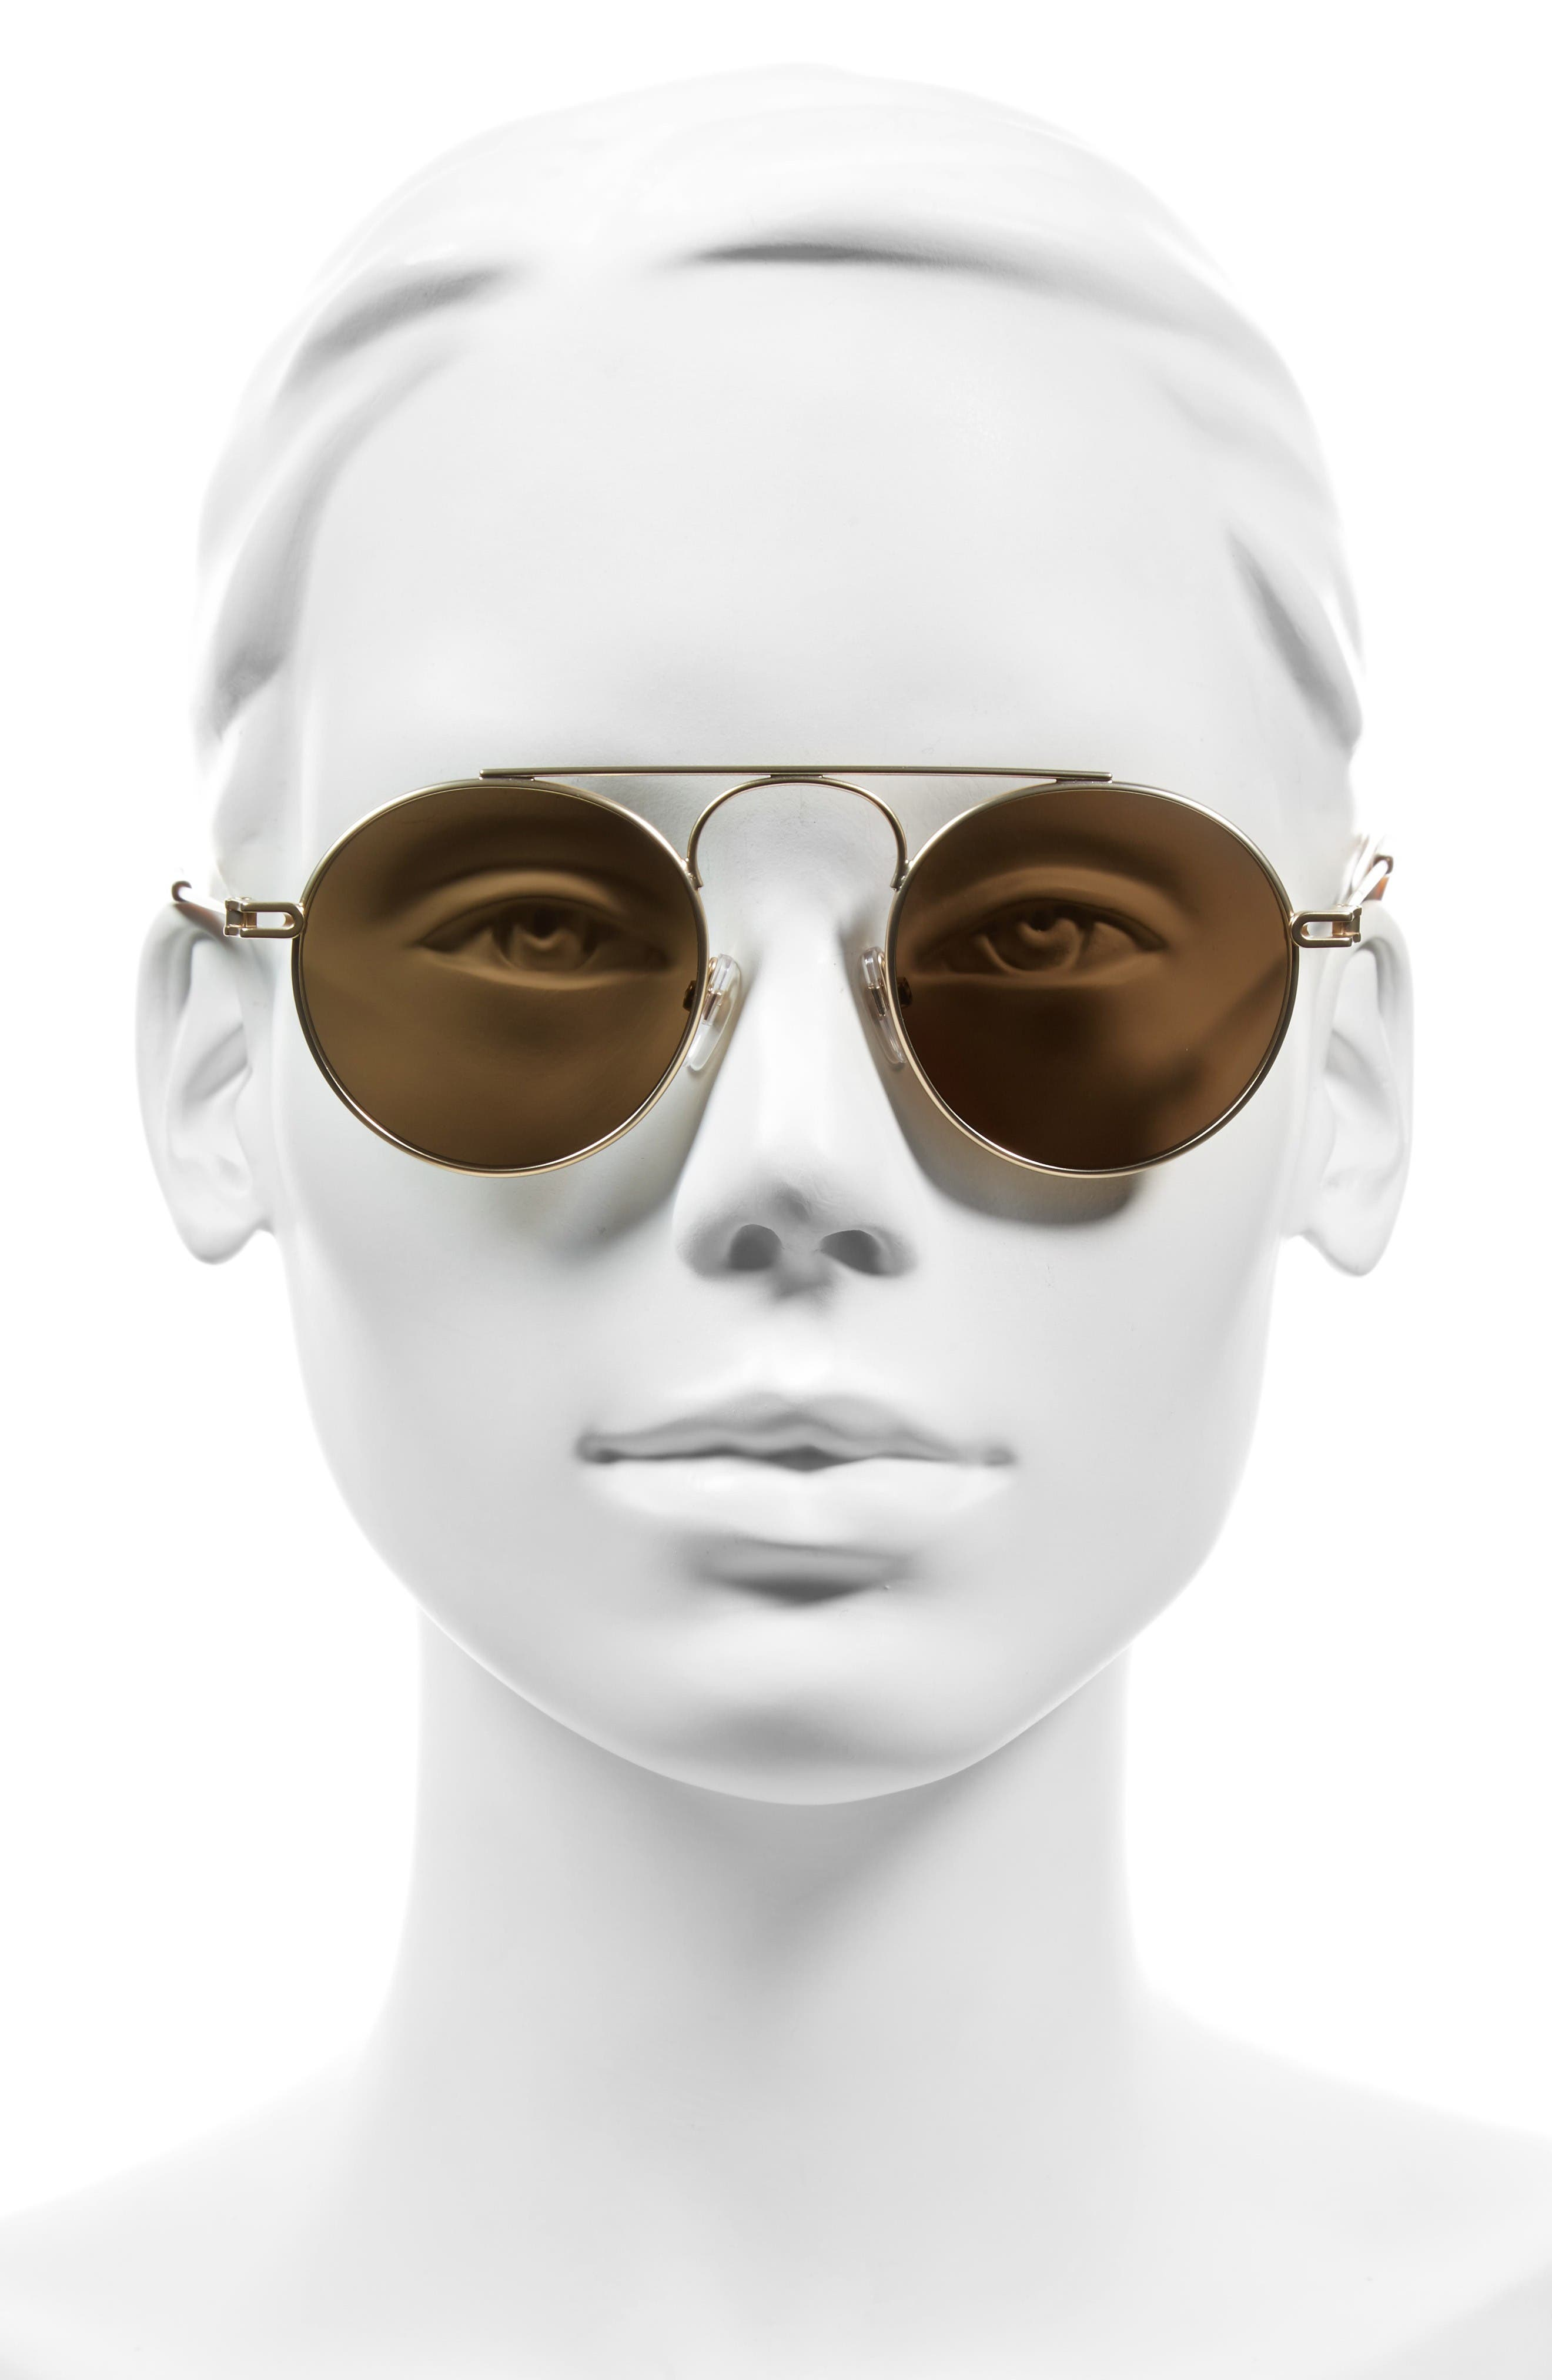 48mm Round Sunglasses,                             Alternate thumbnail 2, color,                             Gold